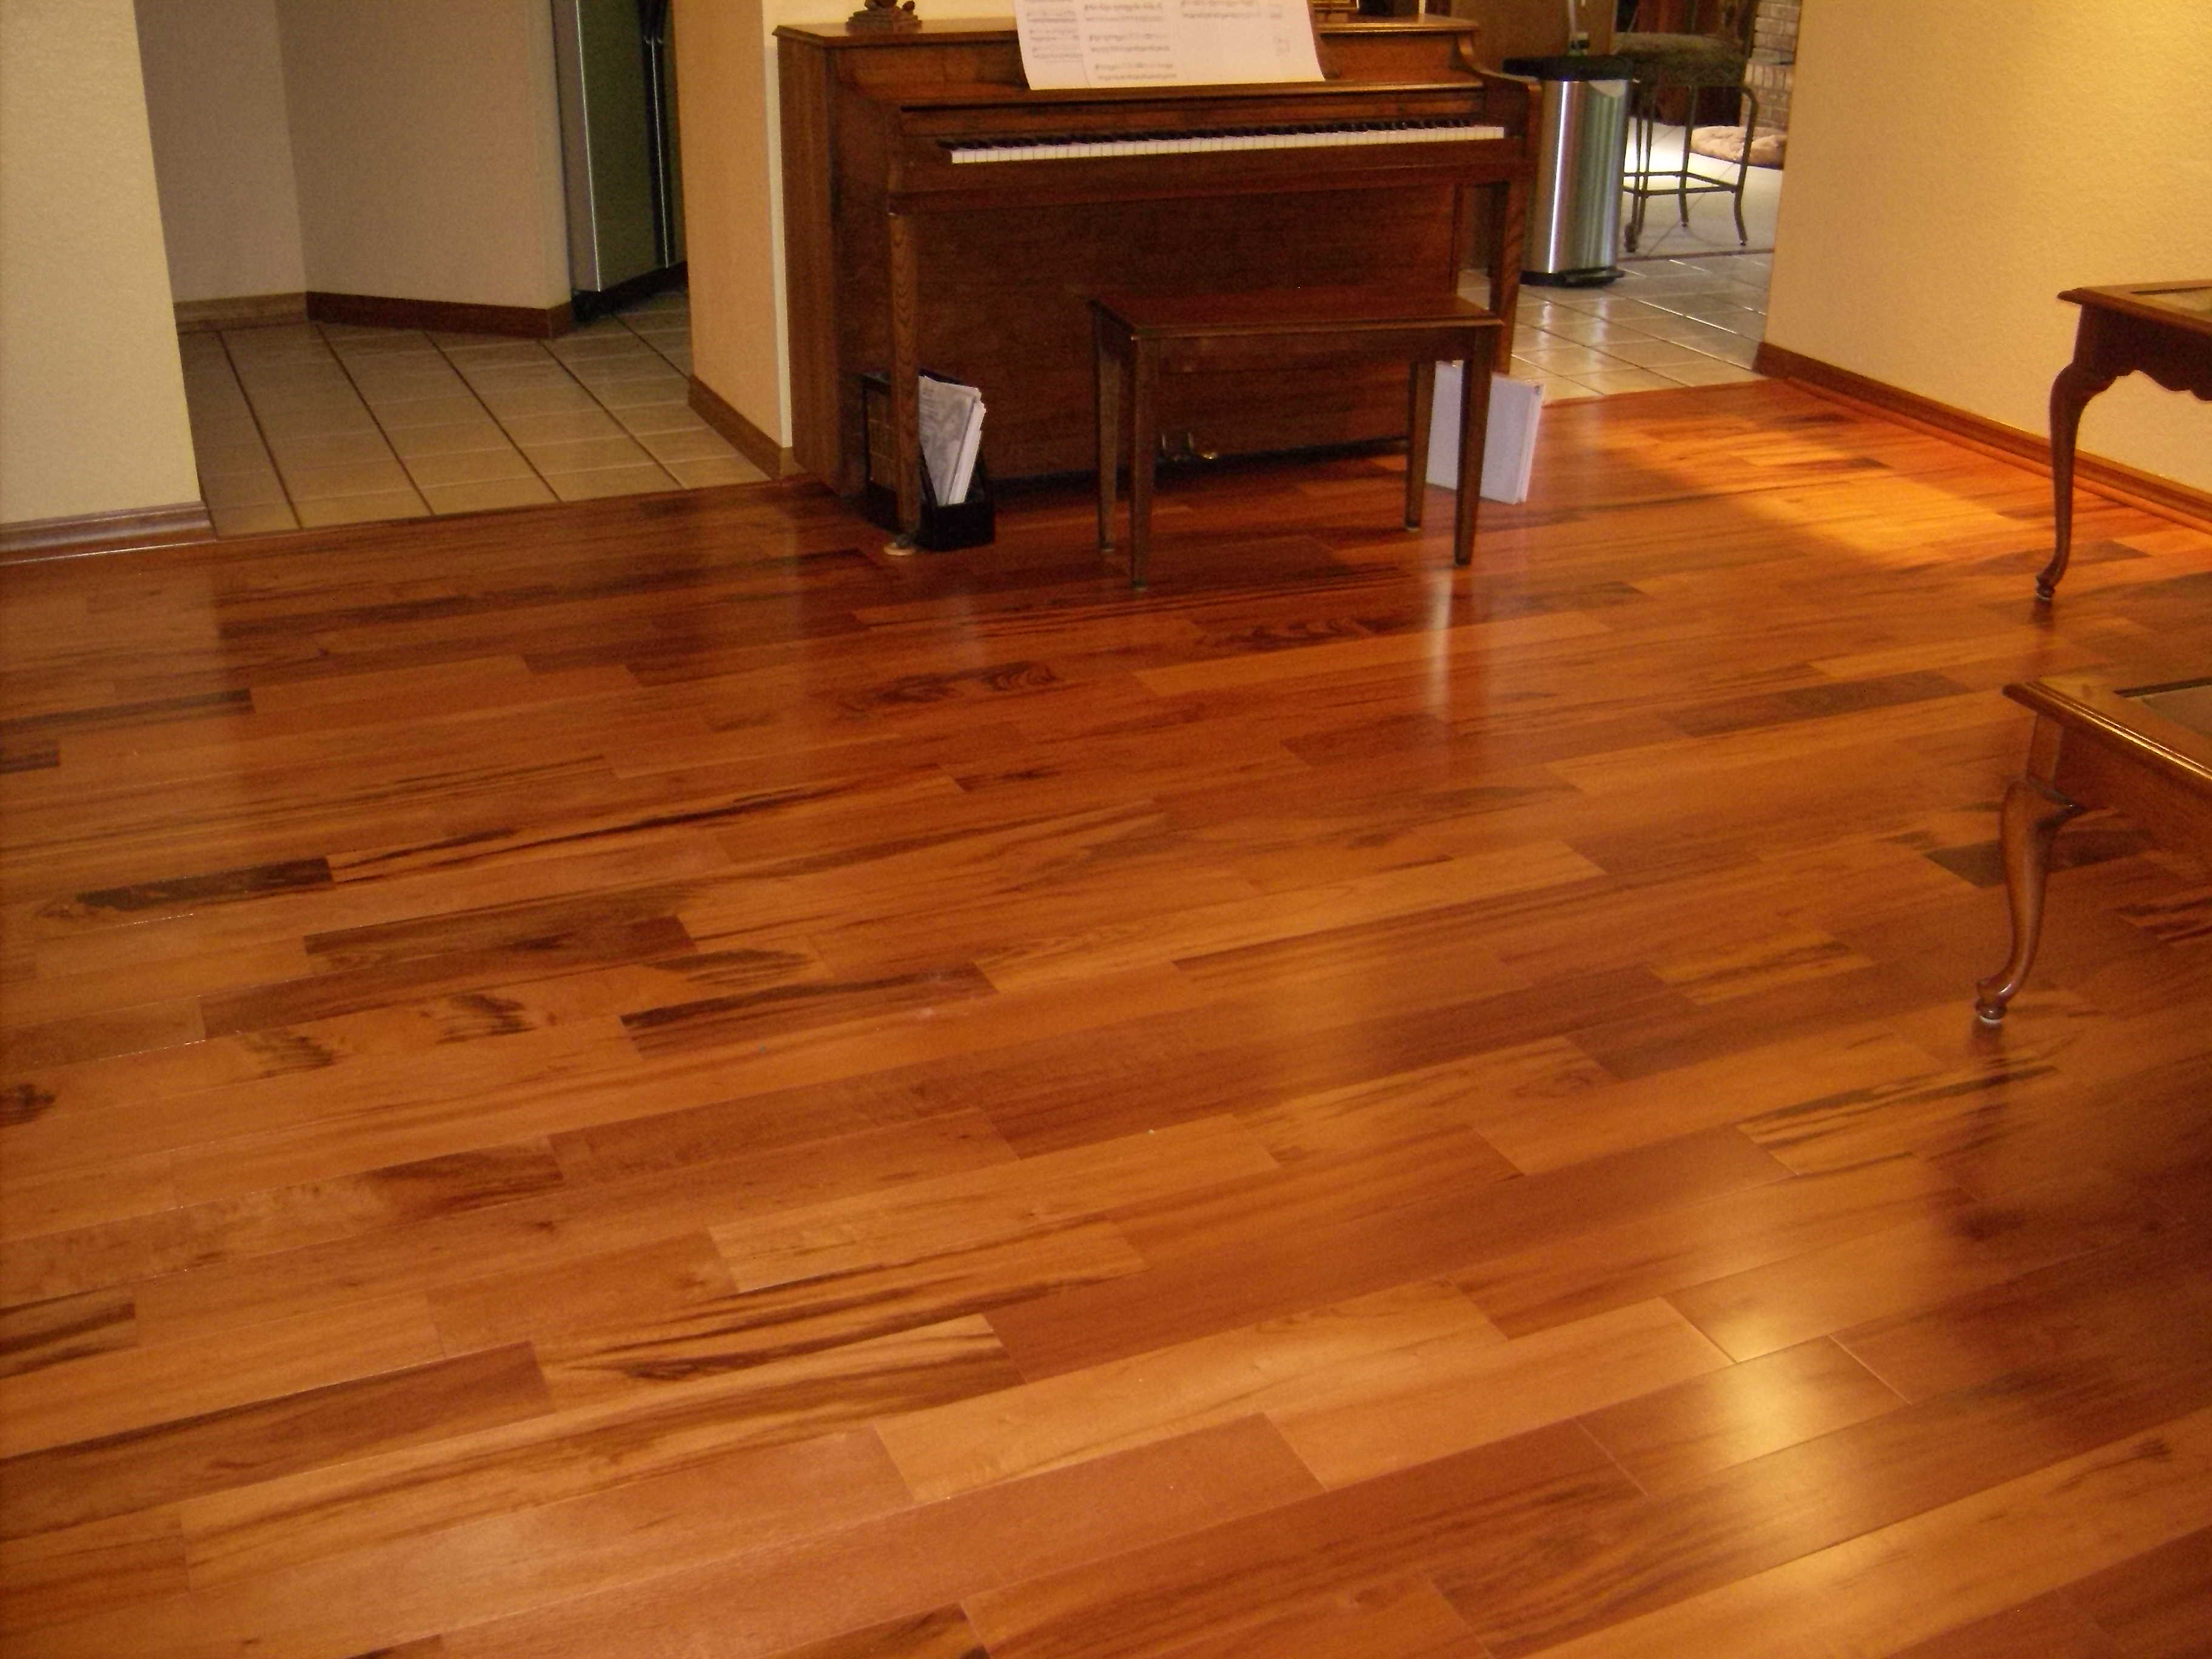 ft floors tiger length tigerwood engineered wood case depot p flooring varying hardwood exotic legend x sq home thick the in wide